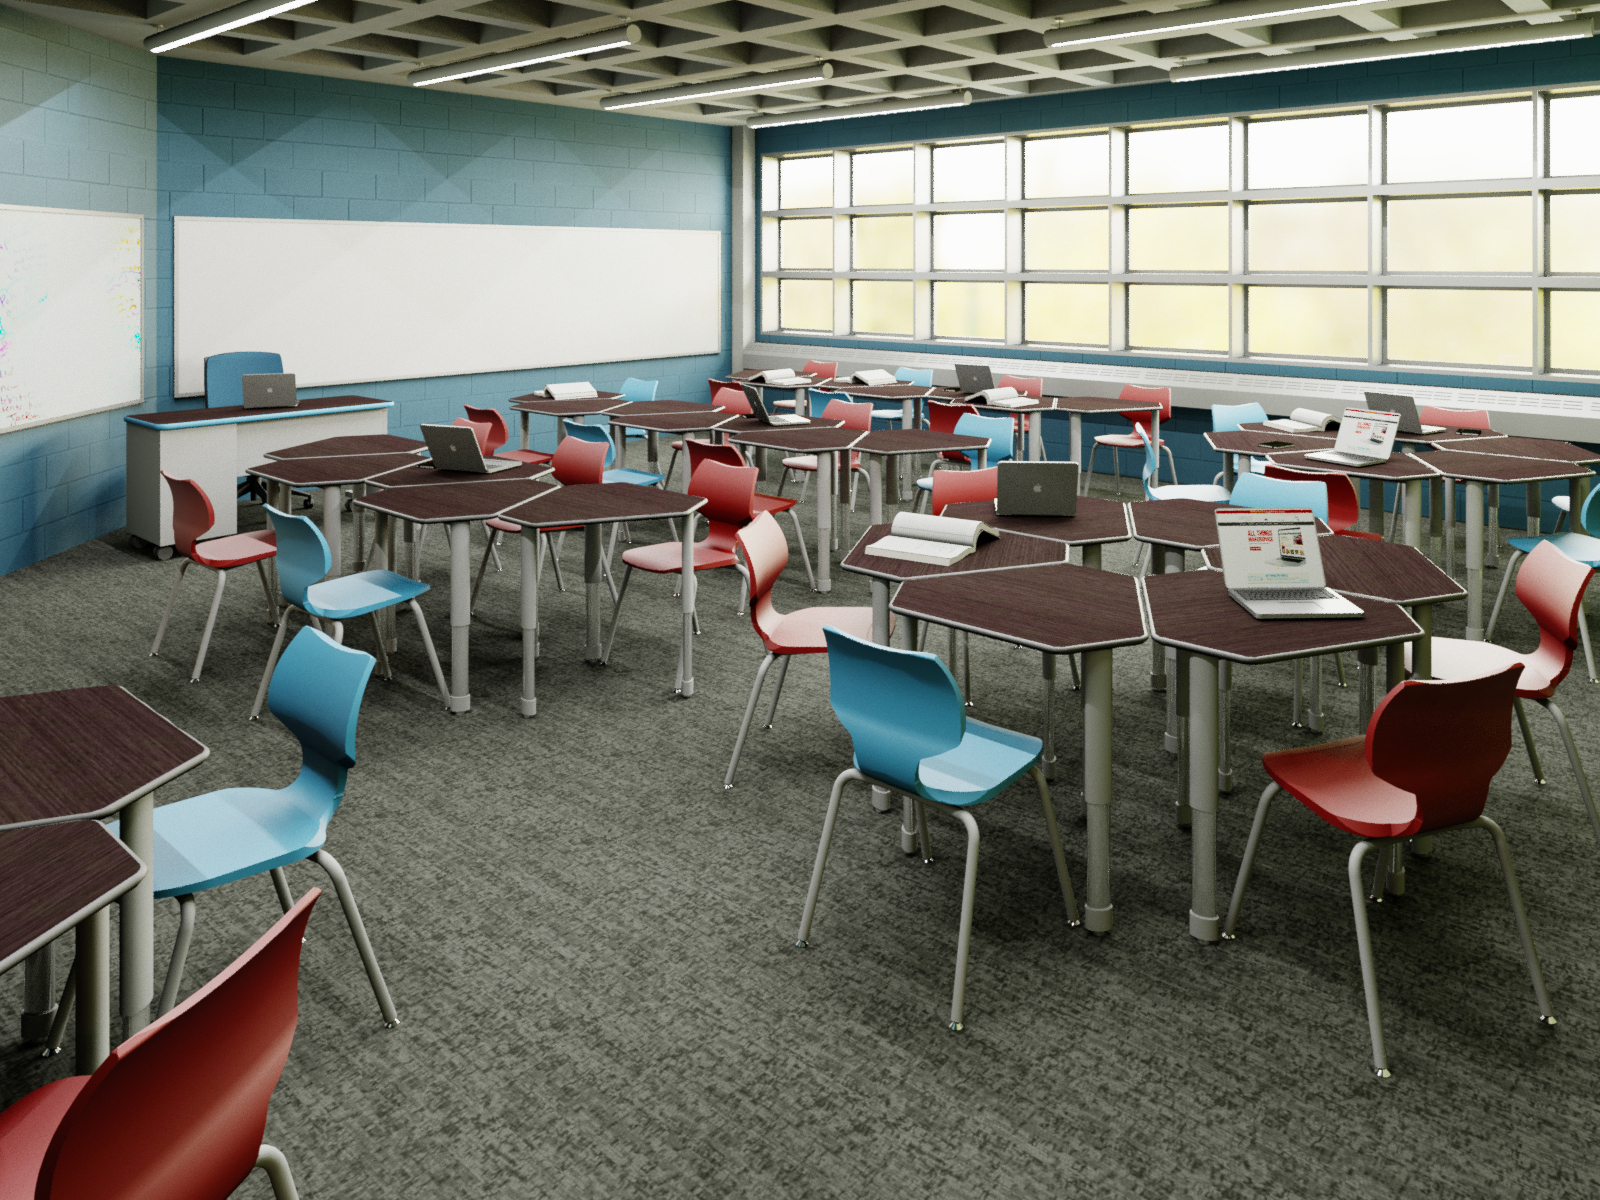 Classroom Design For Wheelchairs ~ Mobility flexibility classroom http mcointeriors